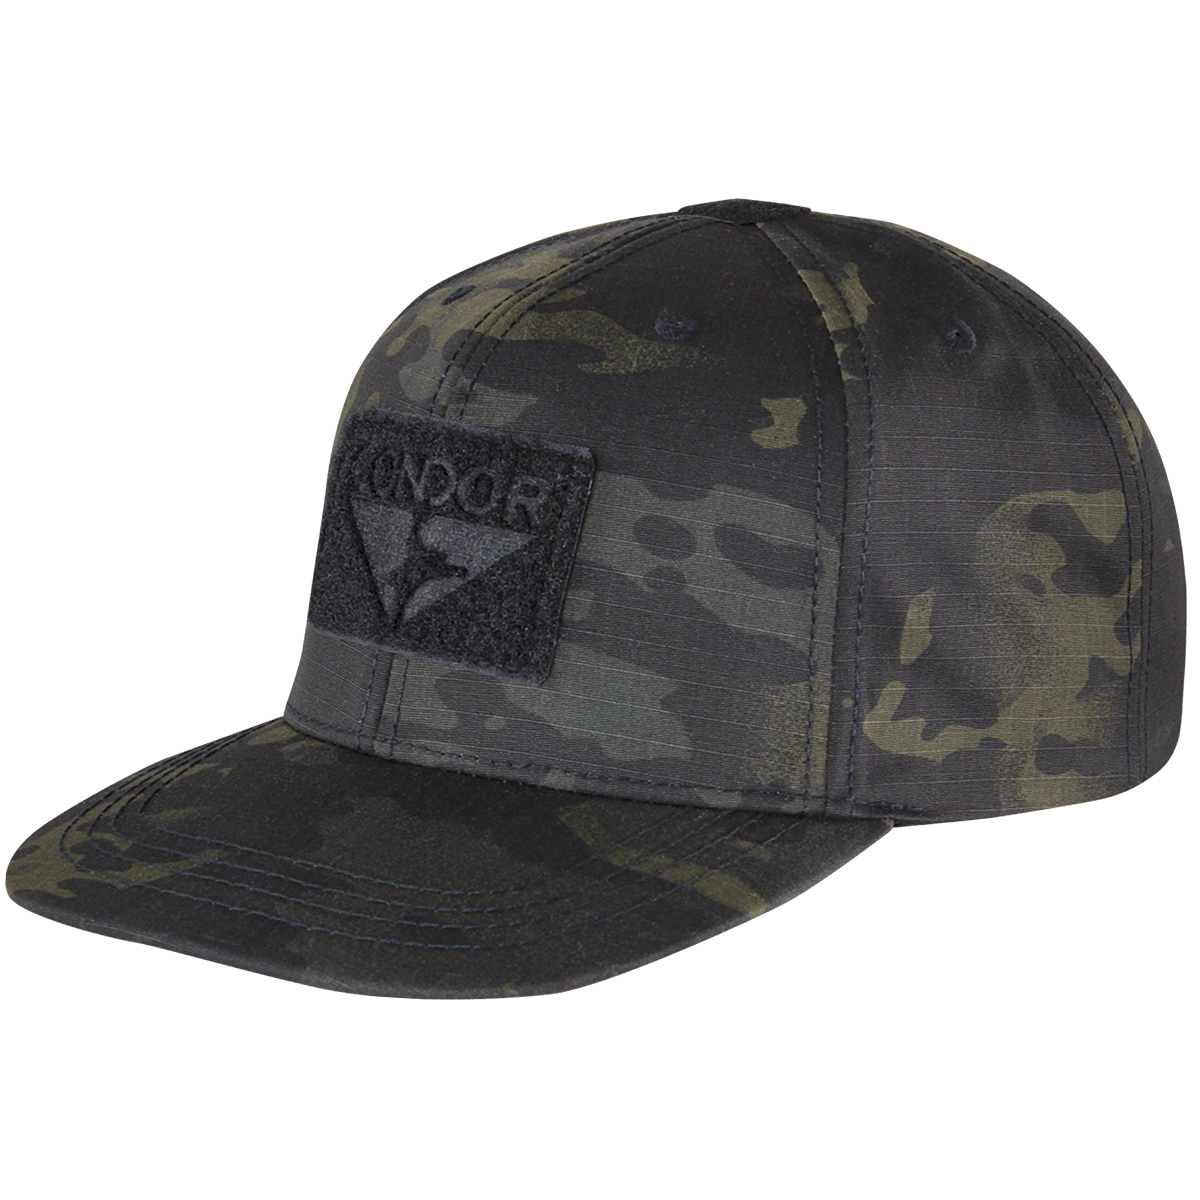 Sentinel Condor Flat Bill Snapback Cap Baseball Mens Tactical Hat MultiCam  Black Camo 9ed56a00d395